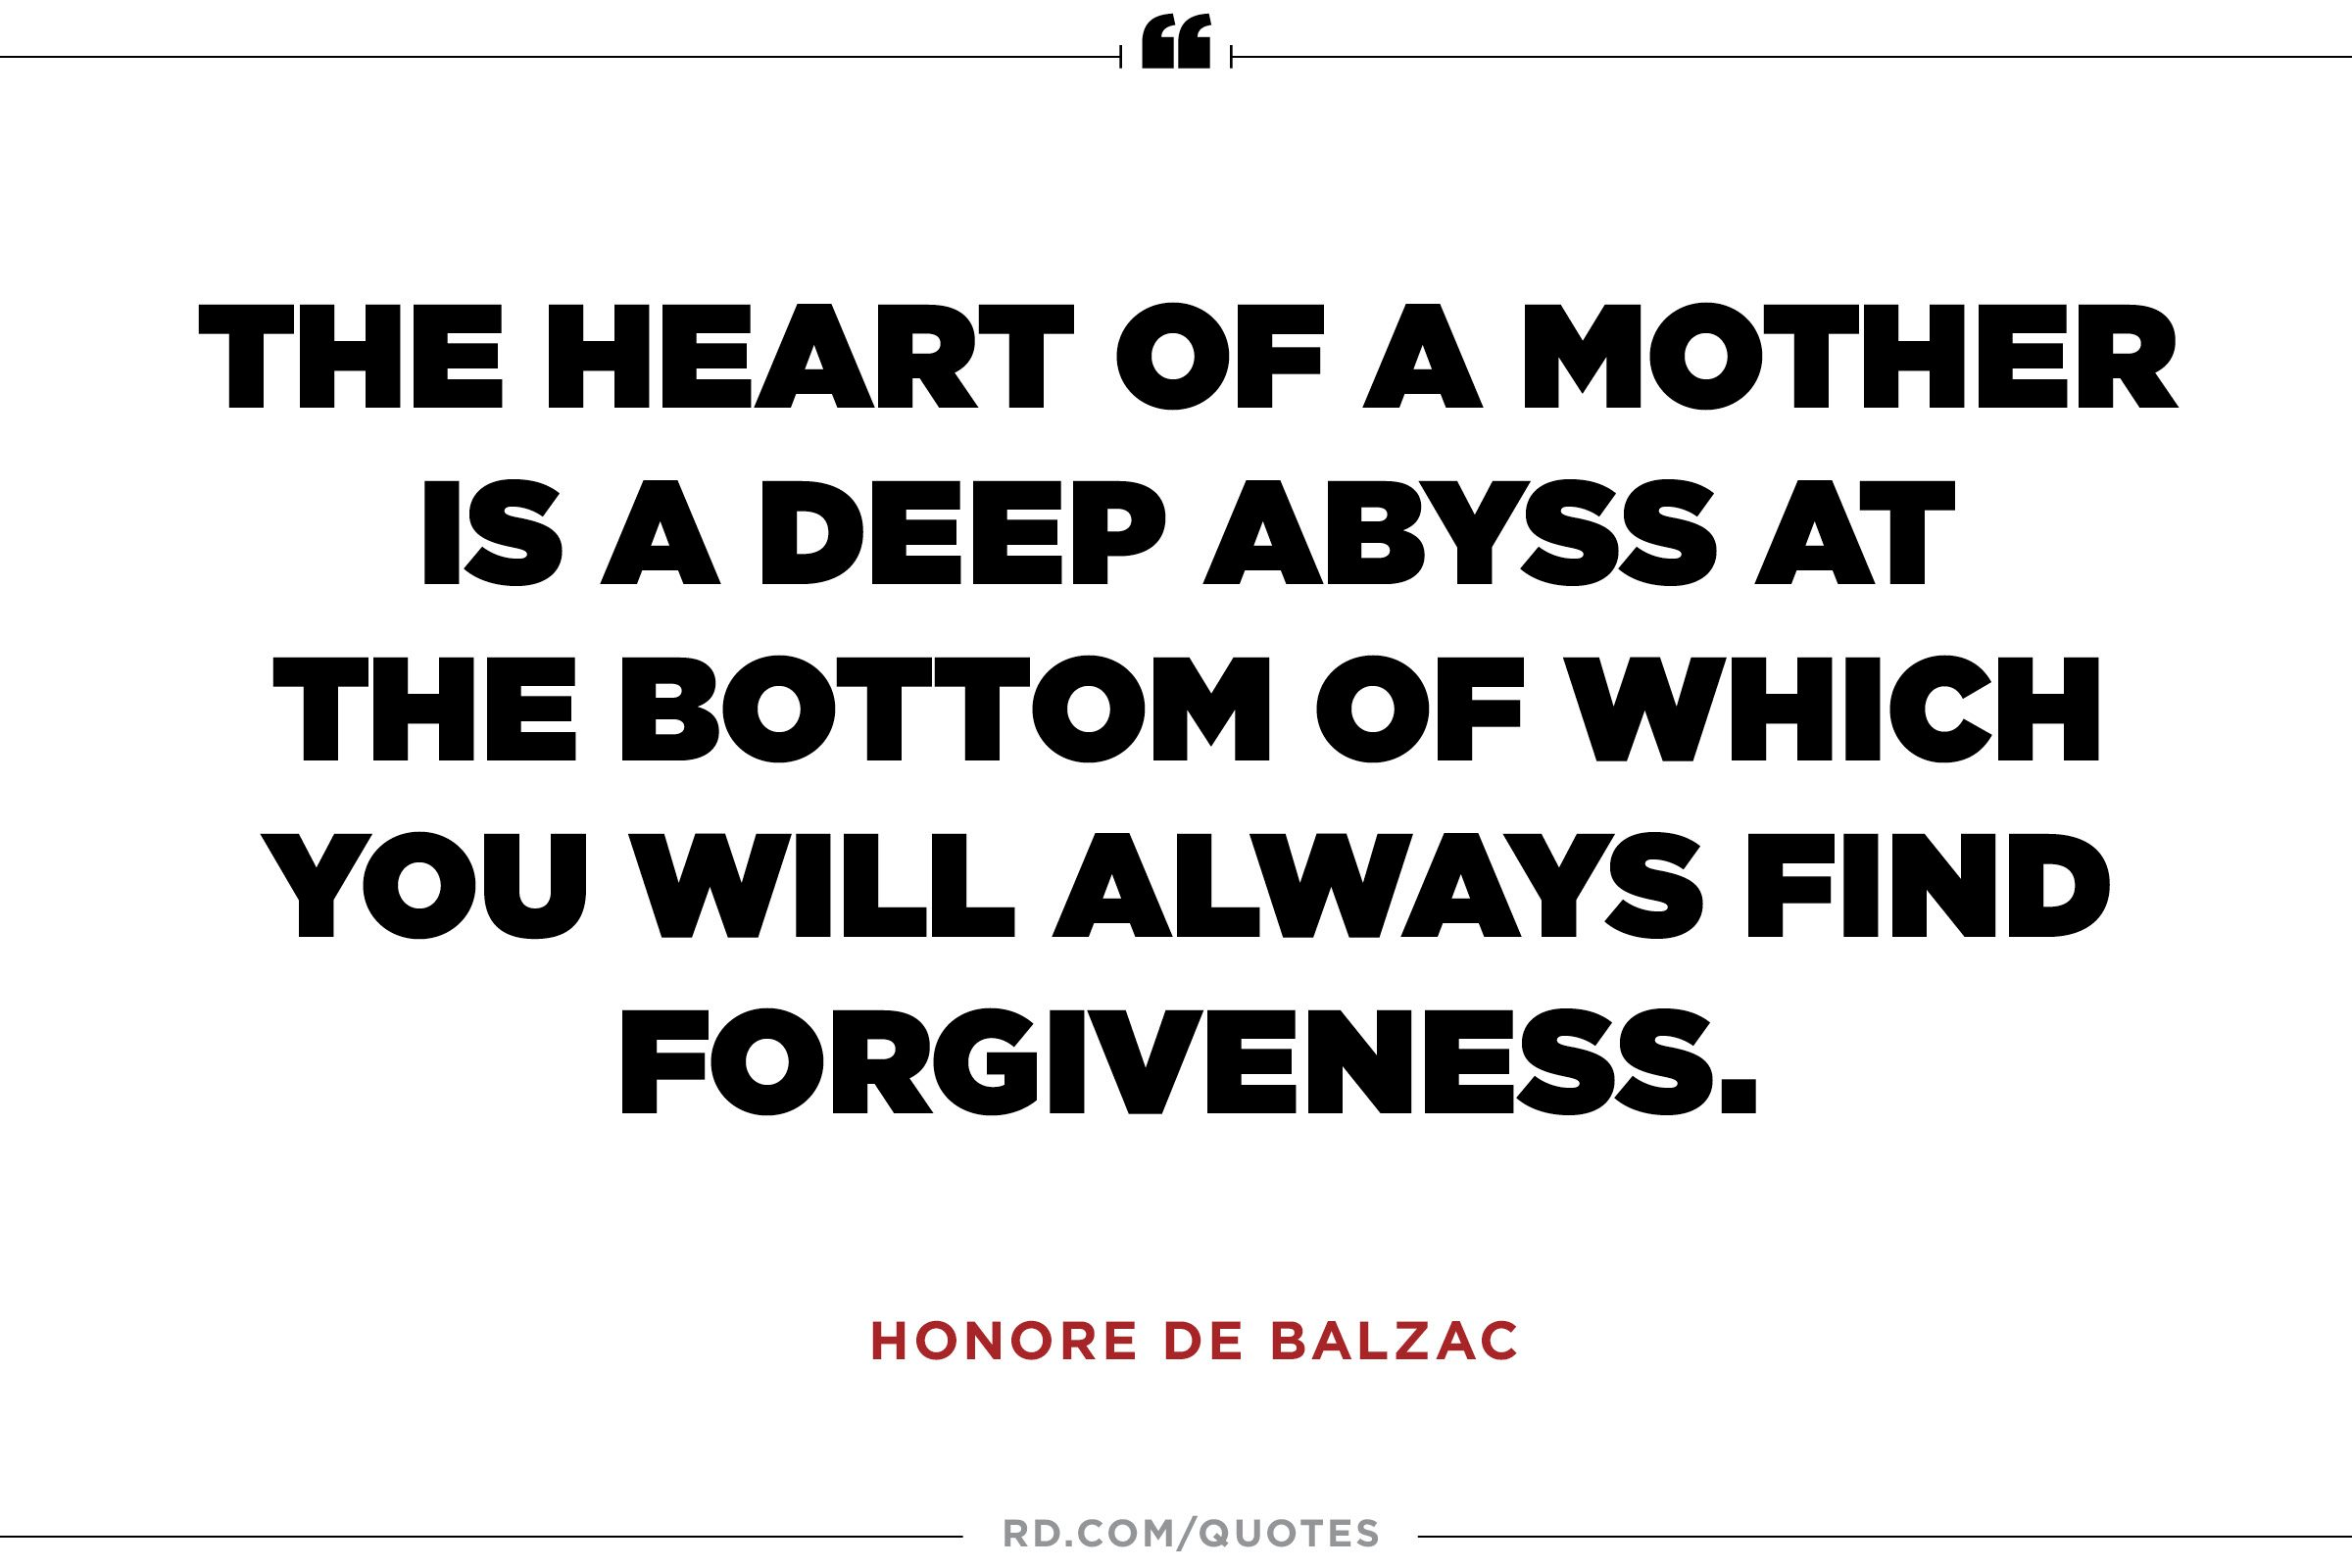 11 Quotes About Mothers That'll Make You Call Yours